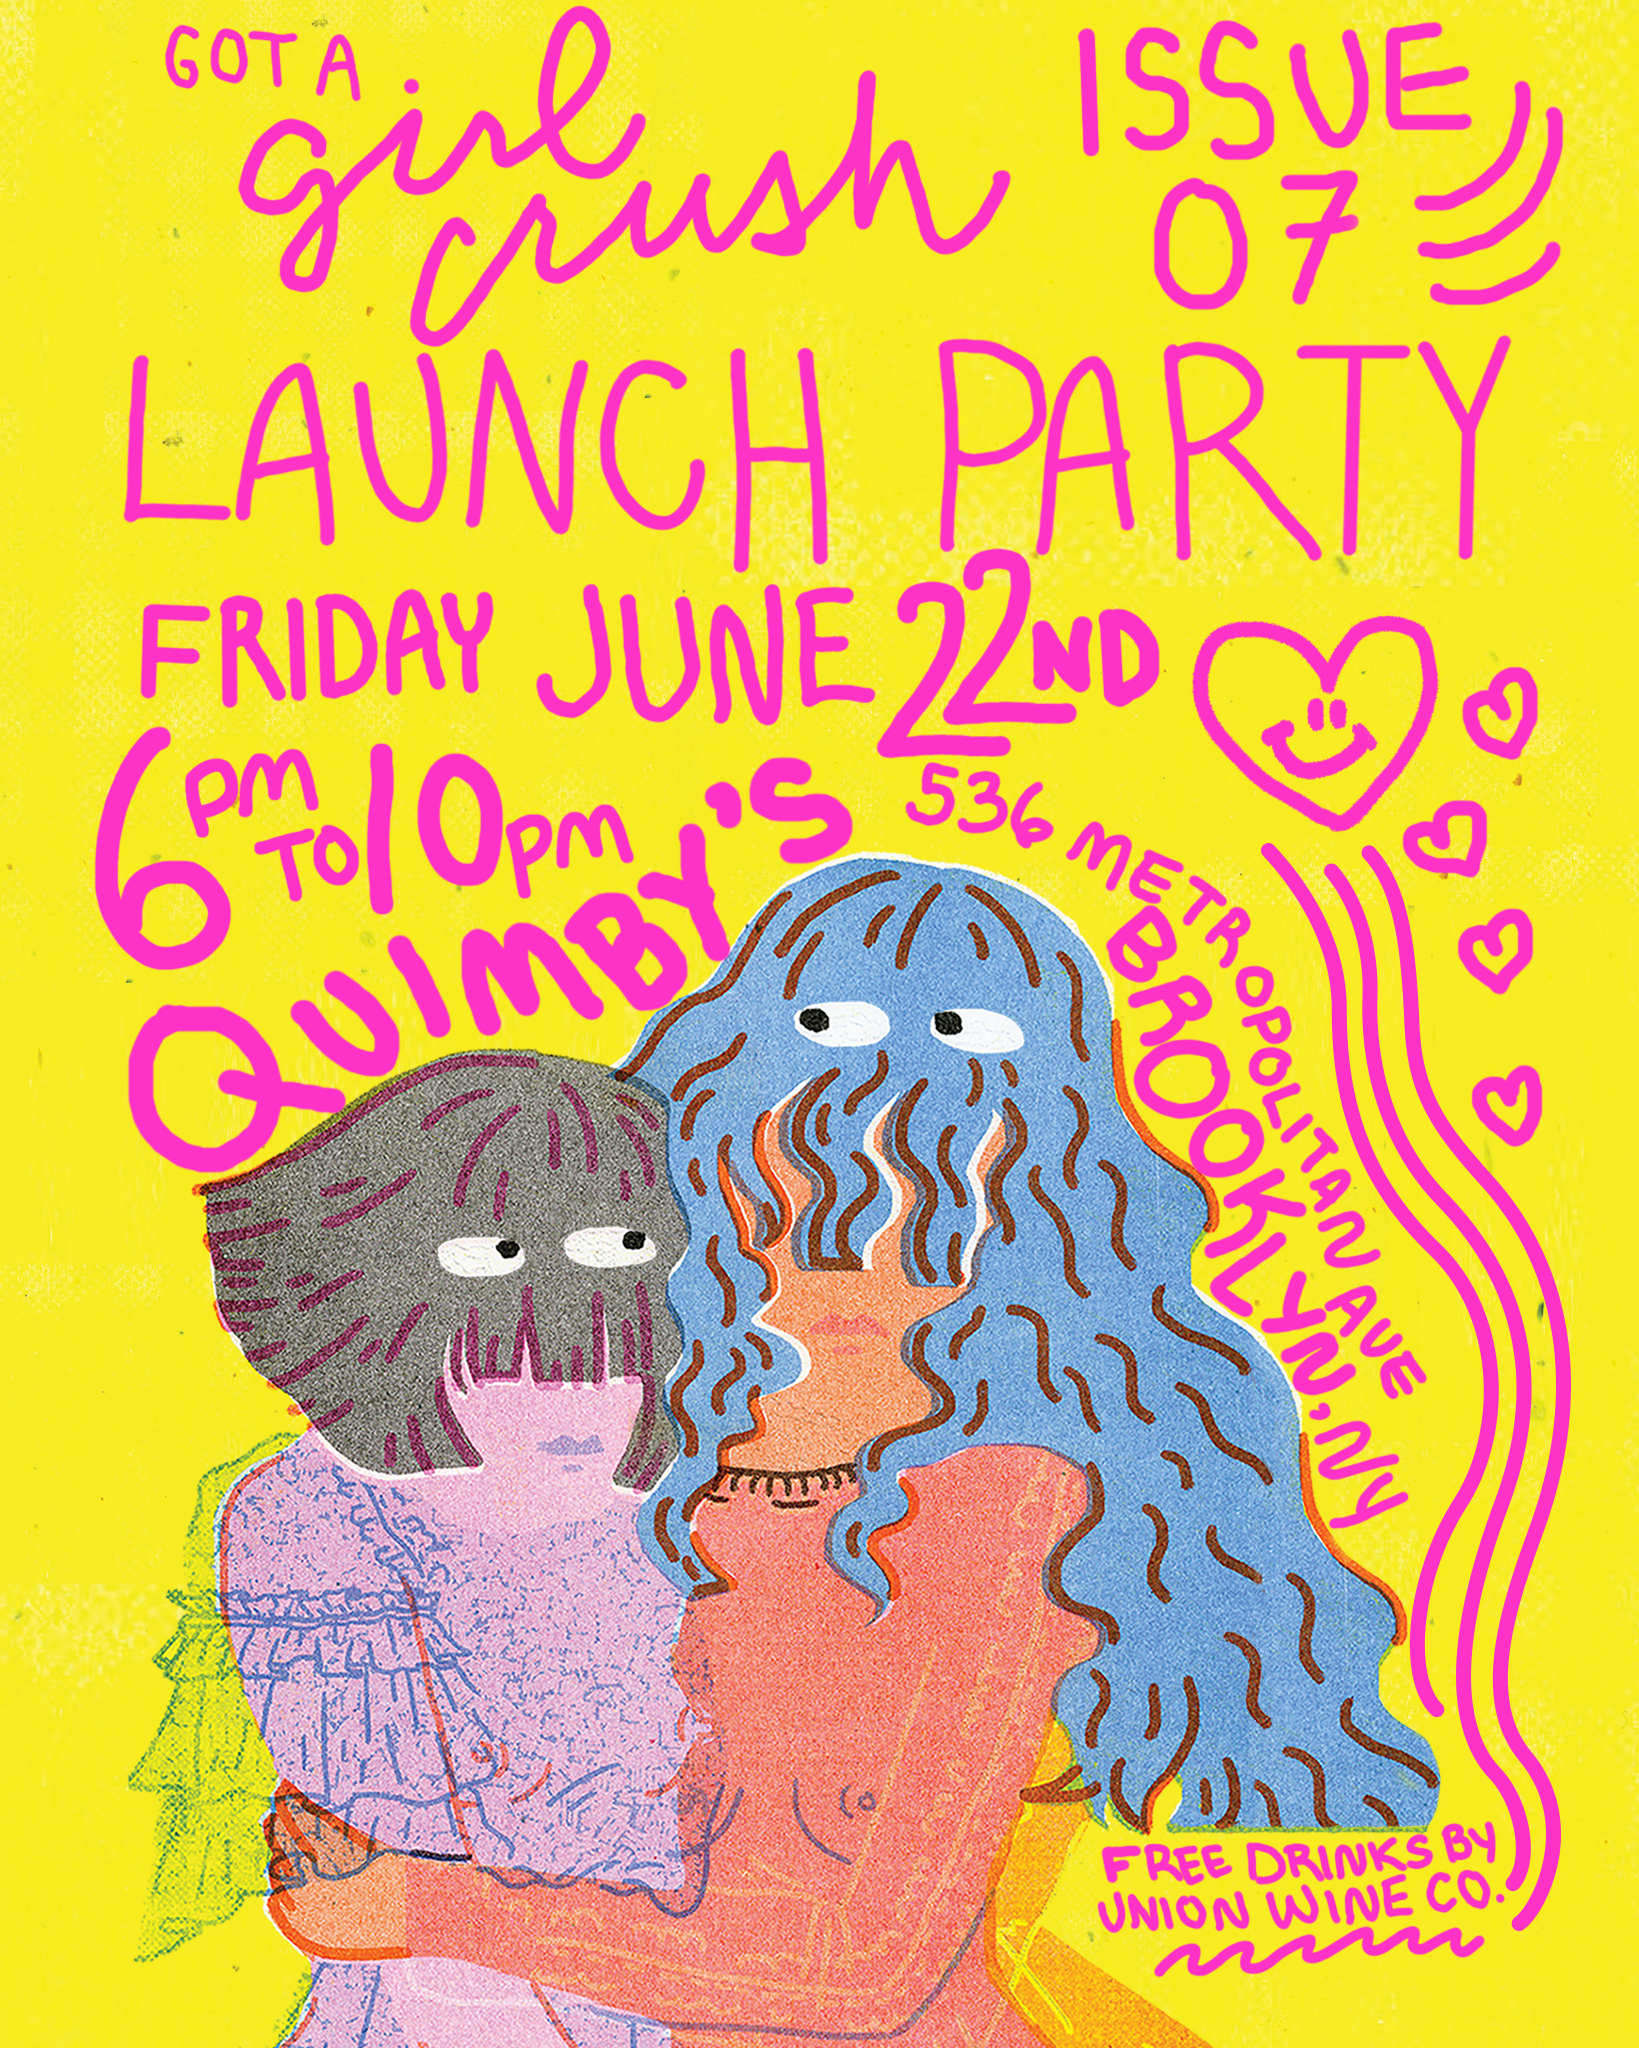 Got a Girl Crush Issue 07 Launch Party